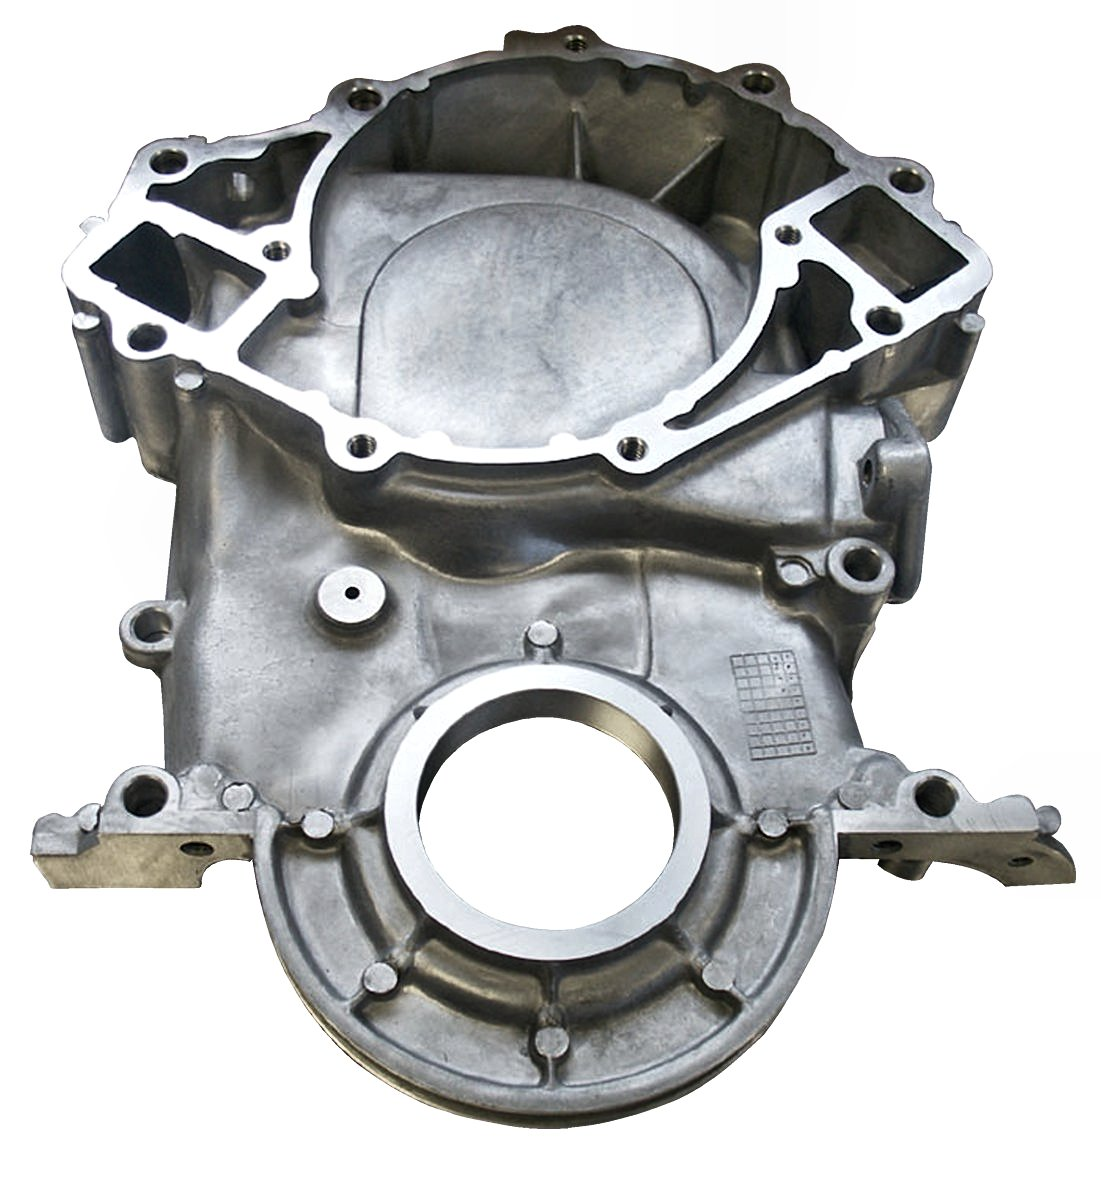 460 7 5L Timing Chain Cover - Broncograveyard com